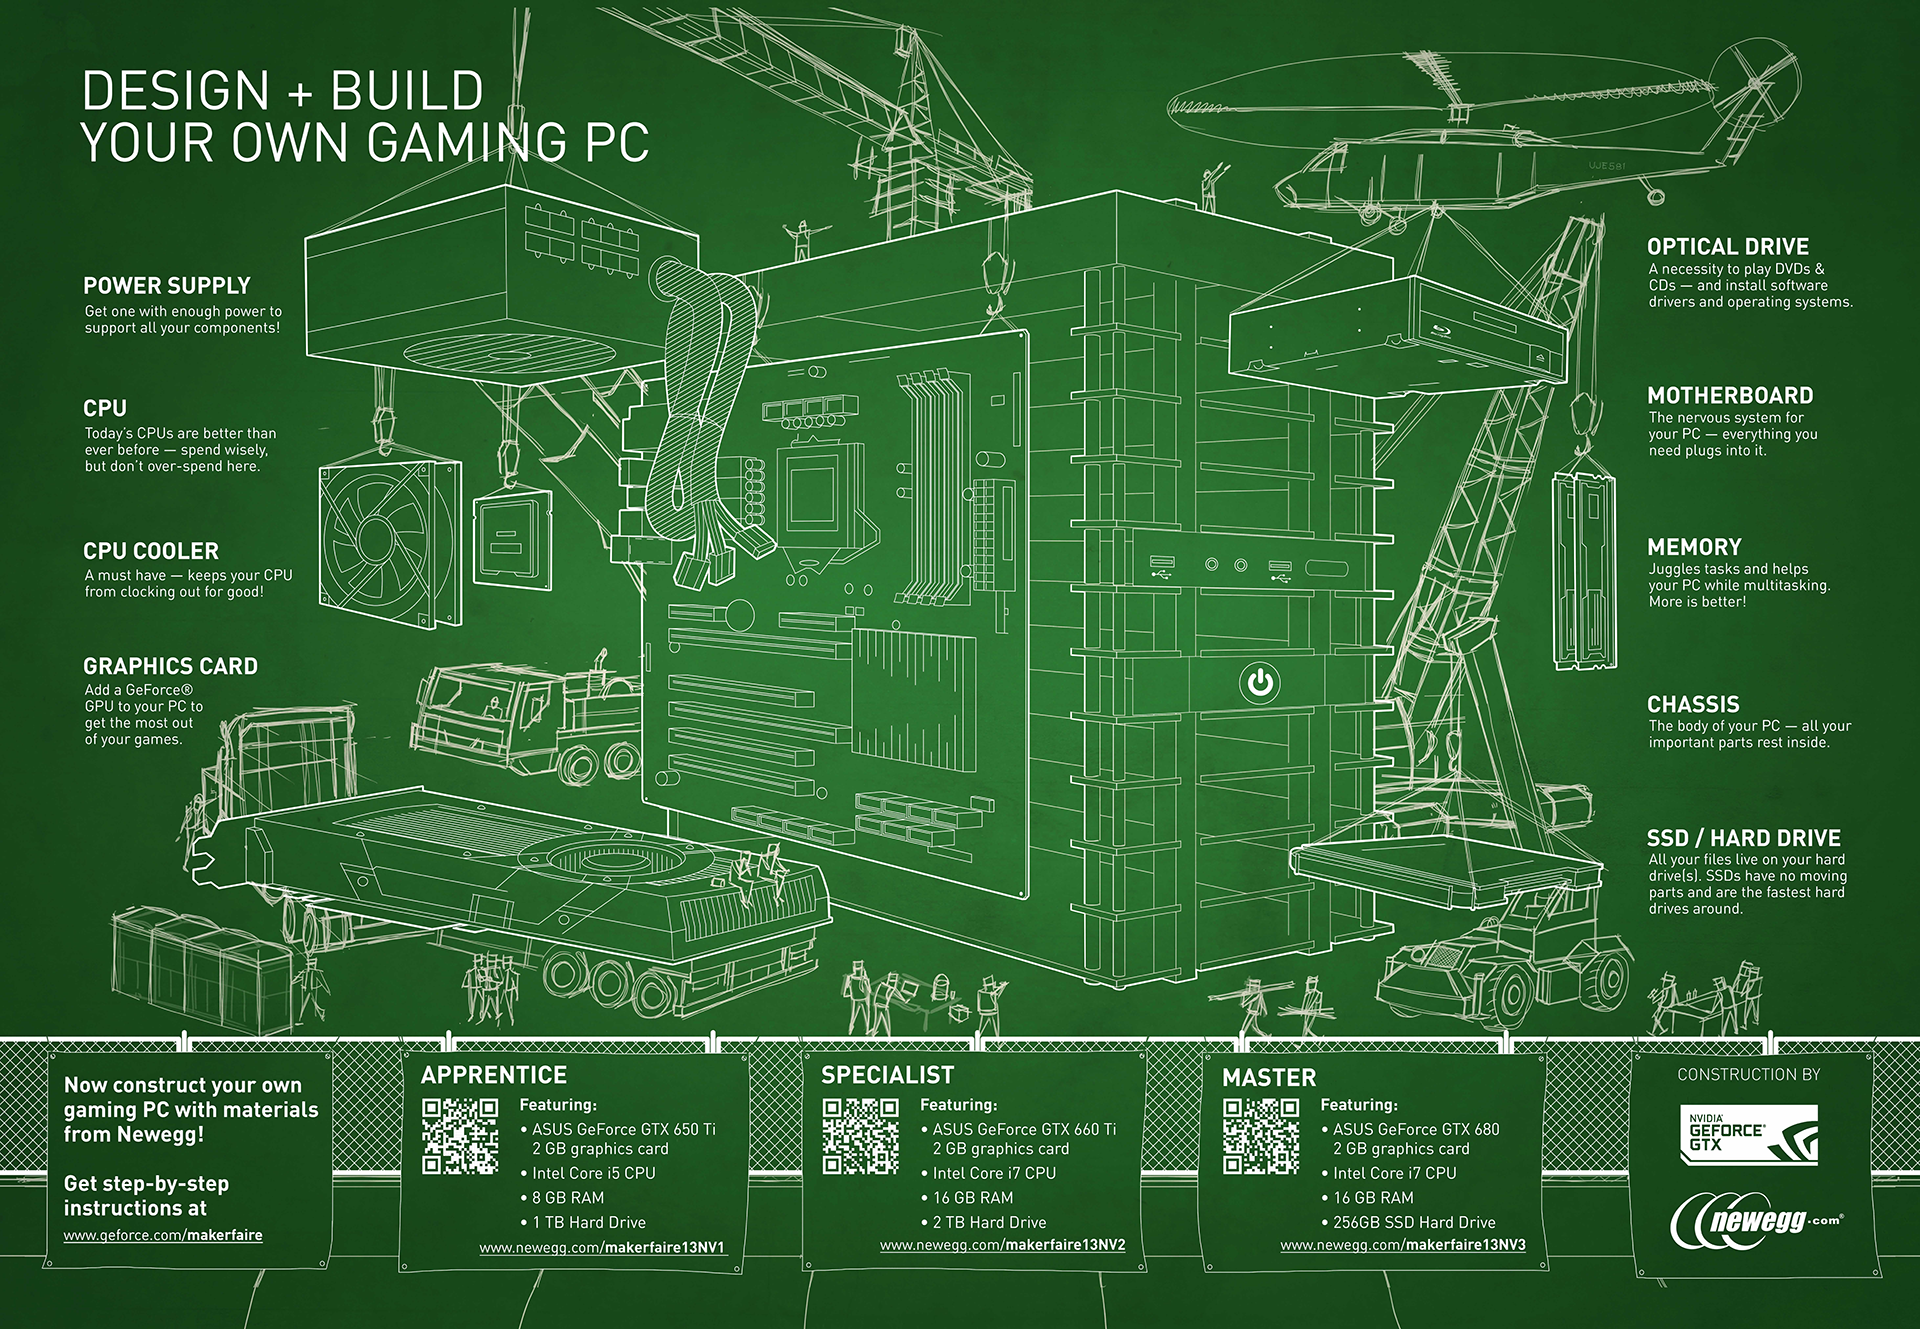 Diy blueprint geforce diy blueprint malvernweather Choice Image